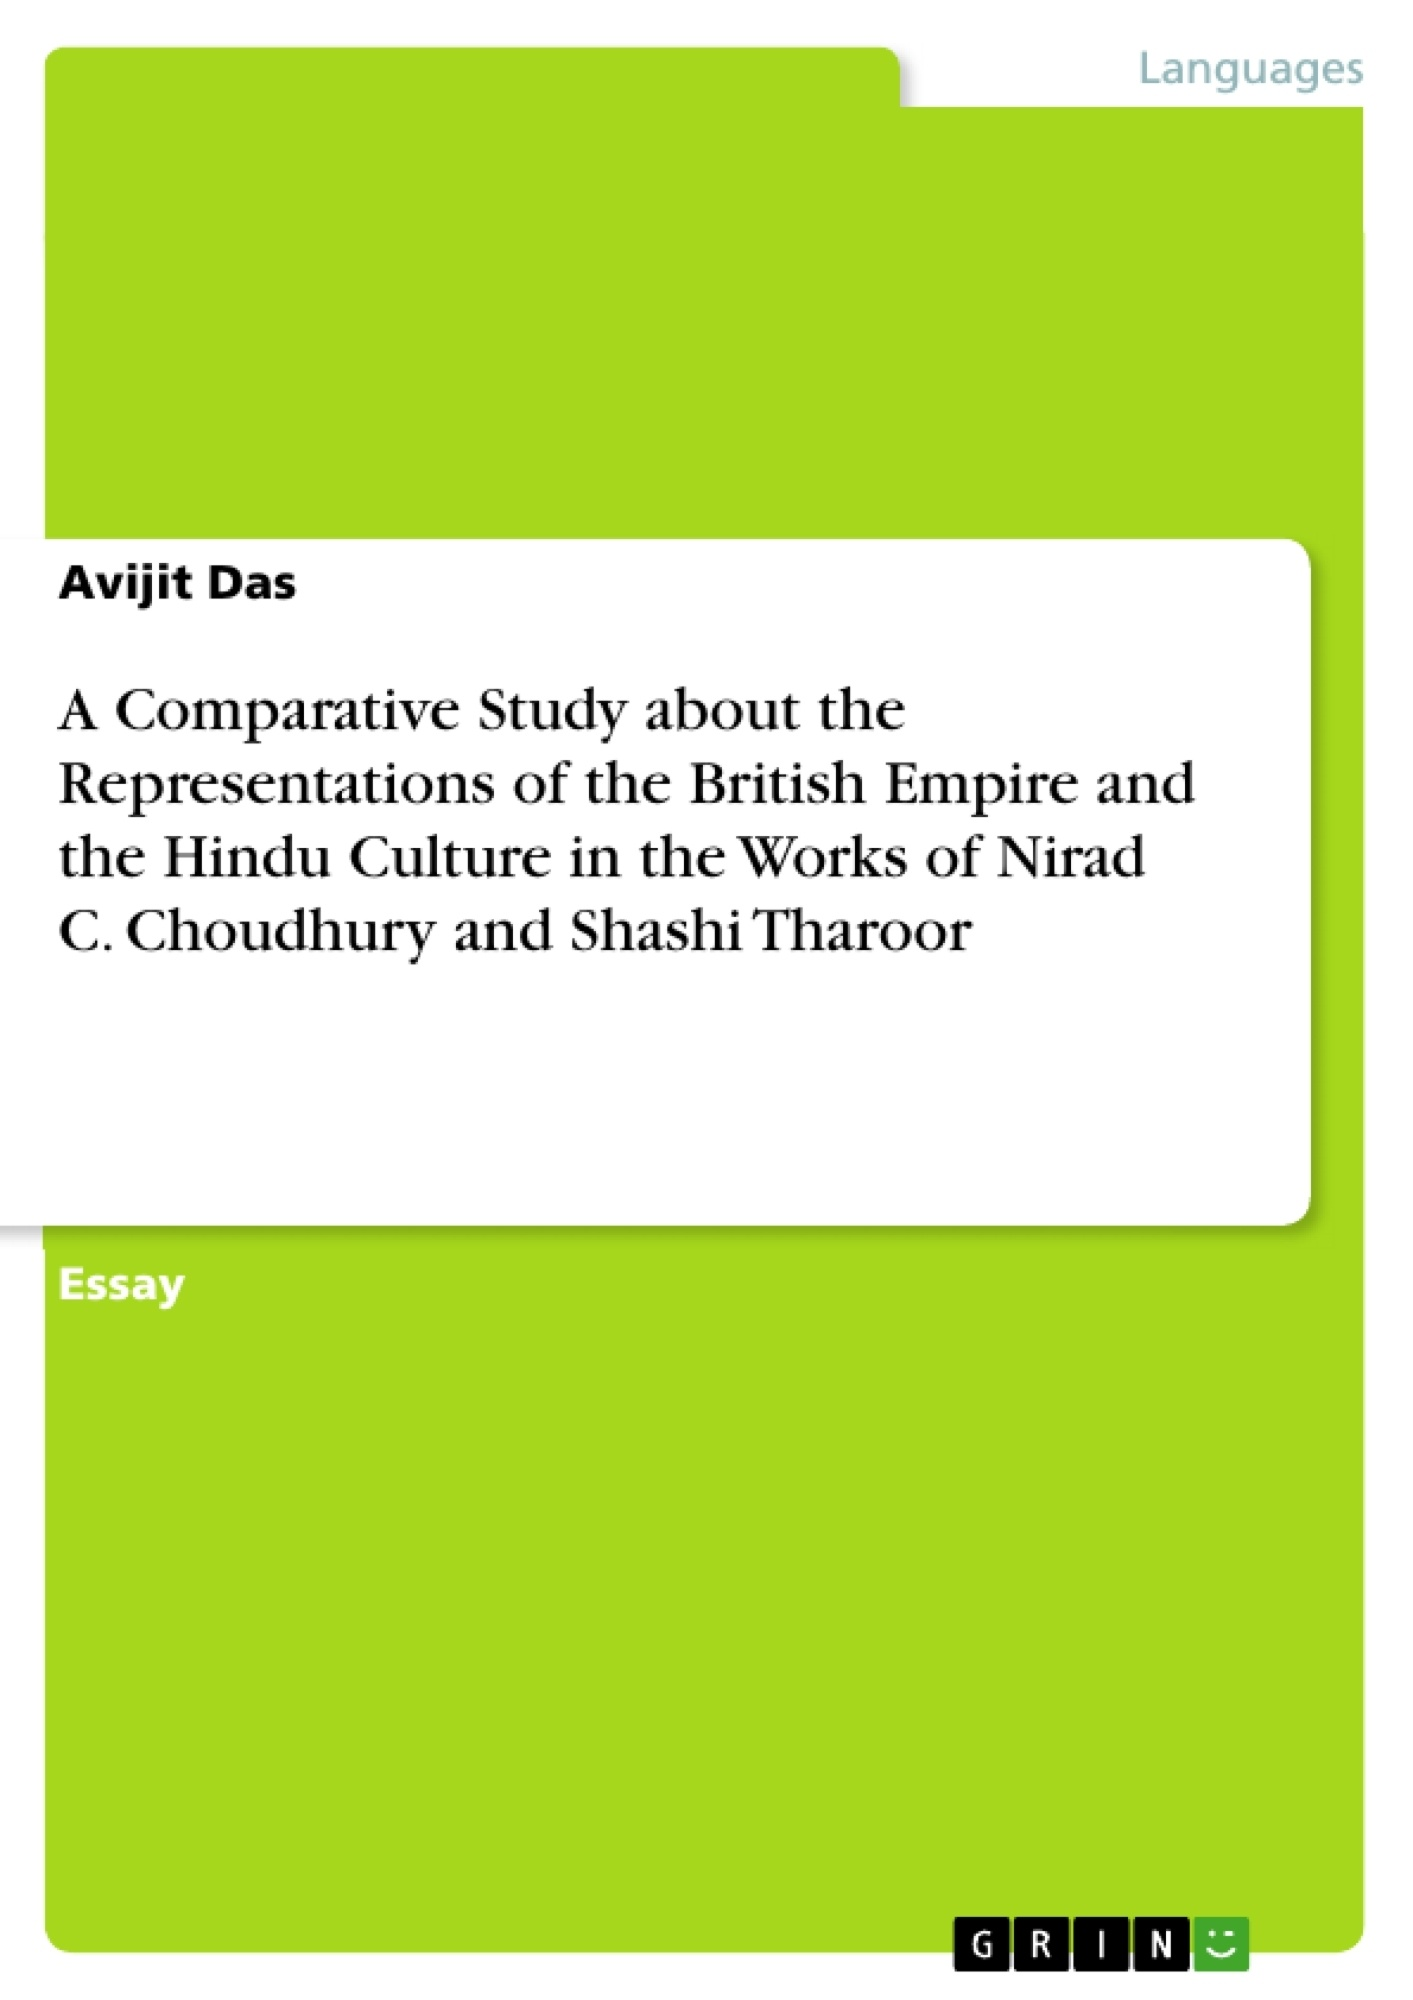 Title: A Comparative Study about the Representations of the British Empire and the Hindu Culture in the Works of Nirad C. Choudhury and Shashi Tharoor